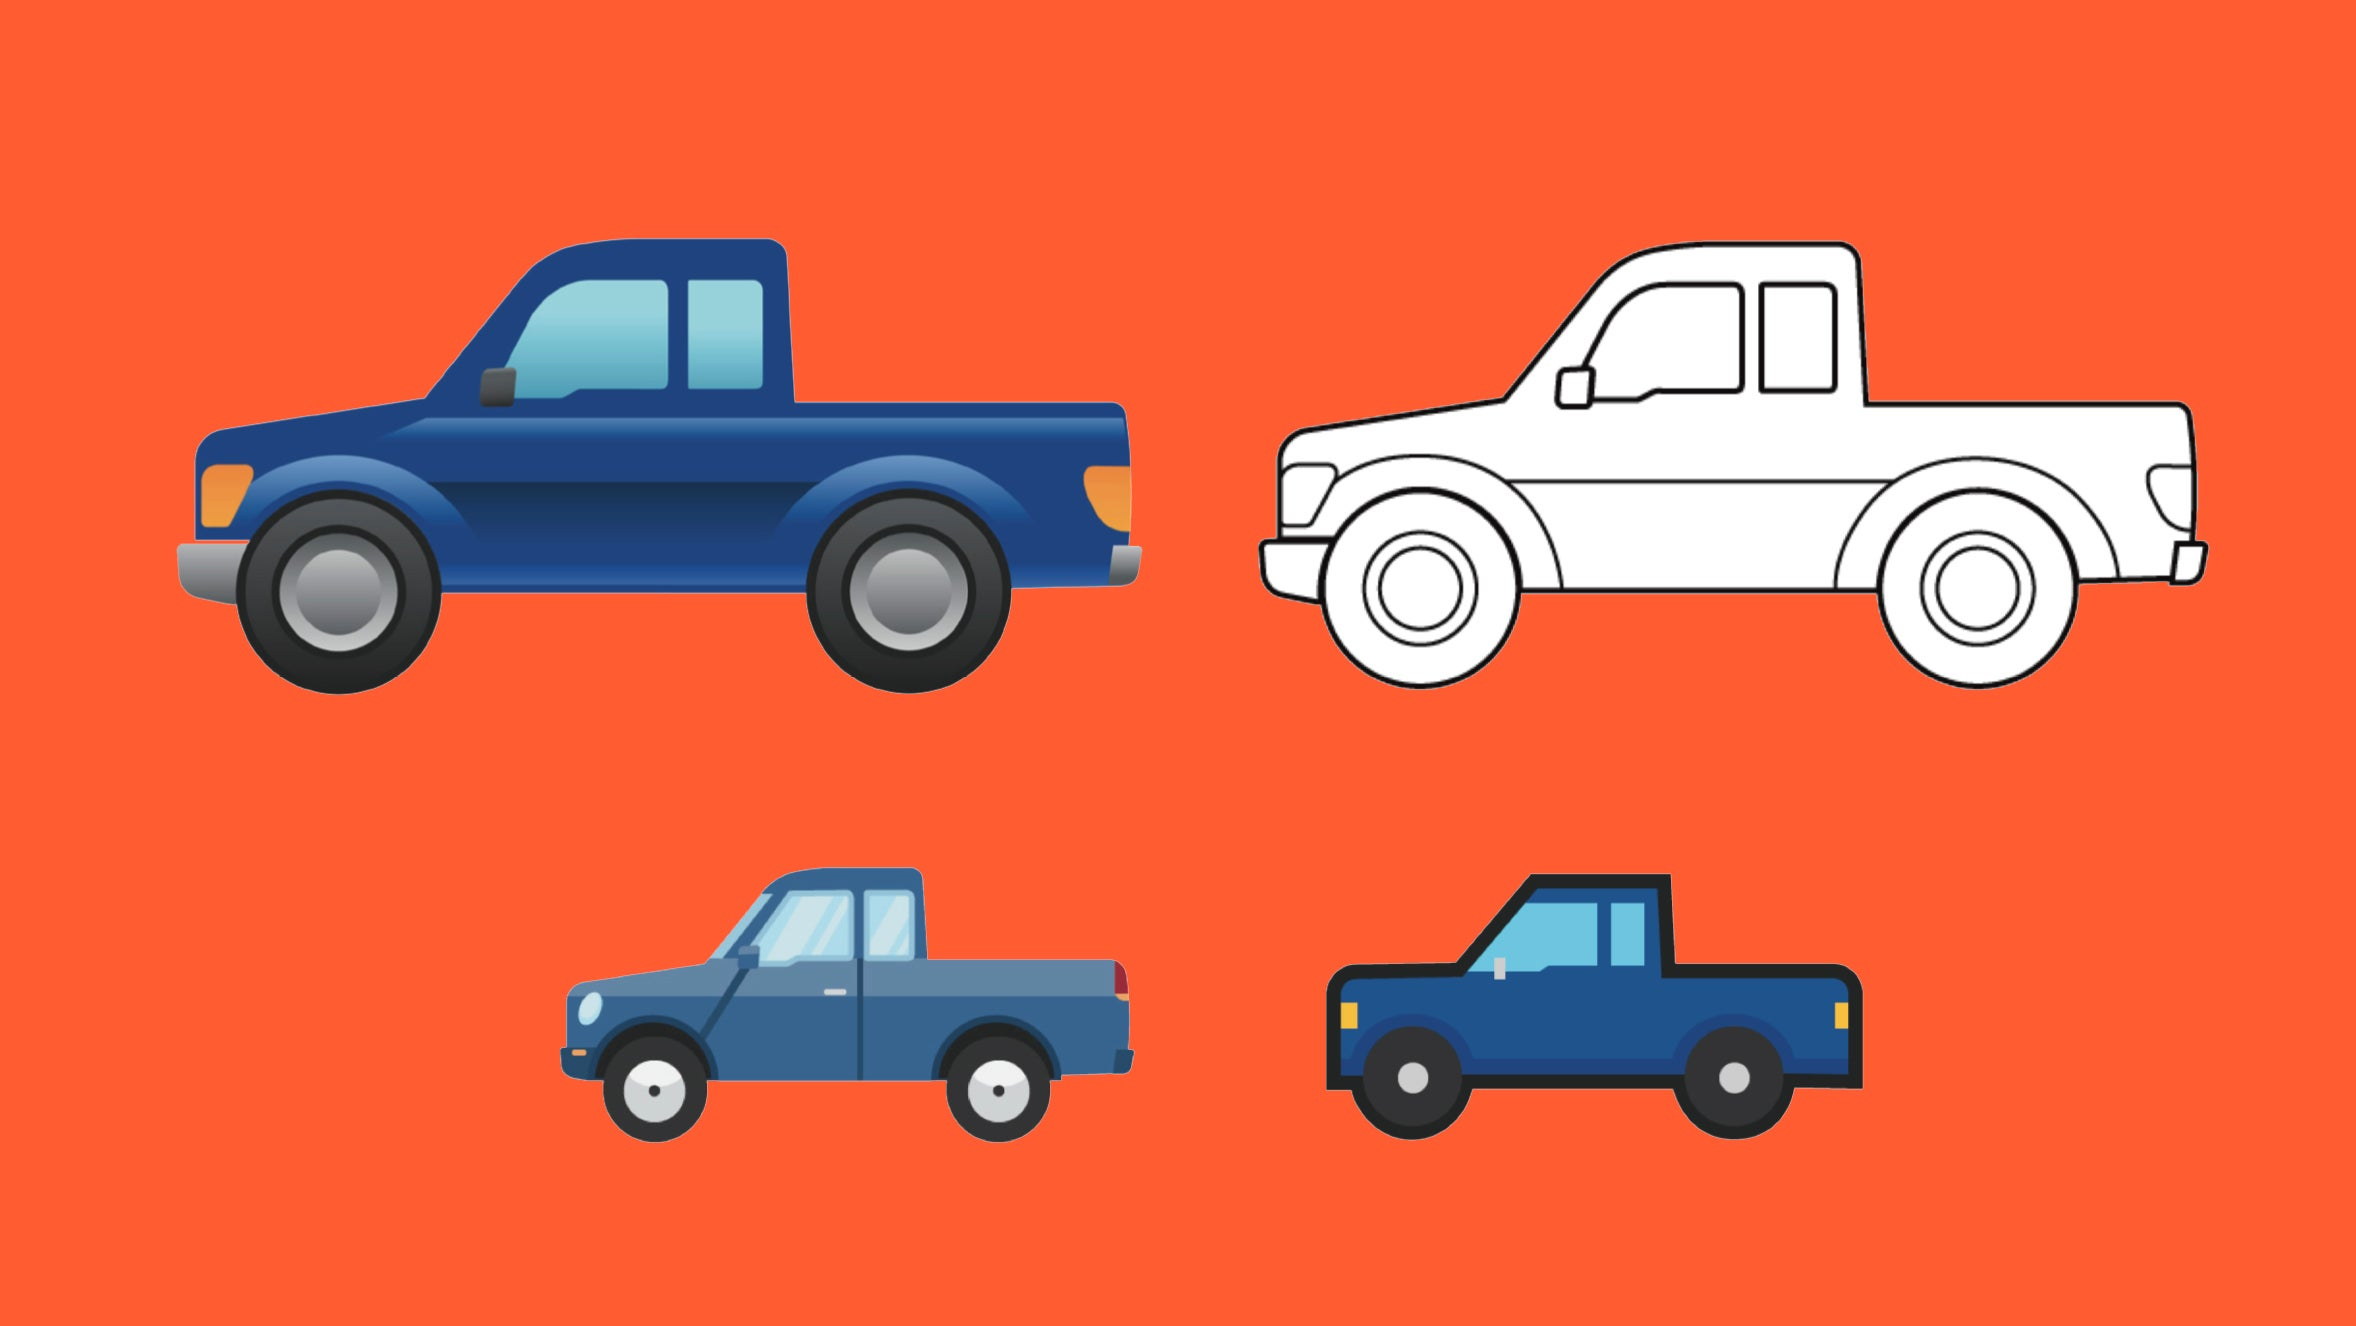 Ford Secretly Created The New Pickup Truck Emoji Because Nothing Is Sacred